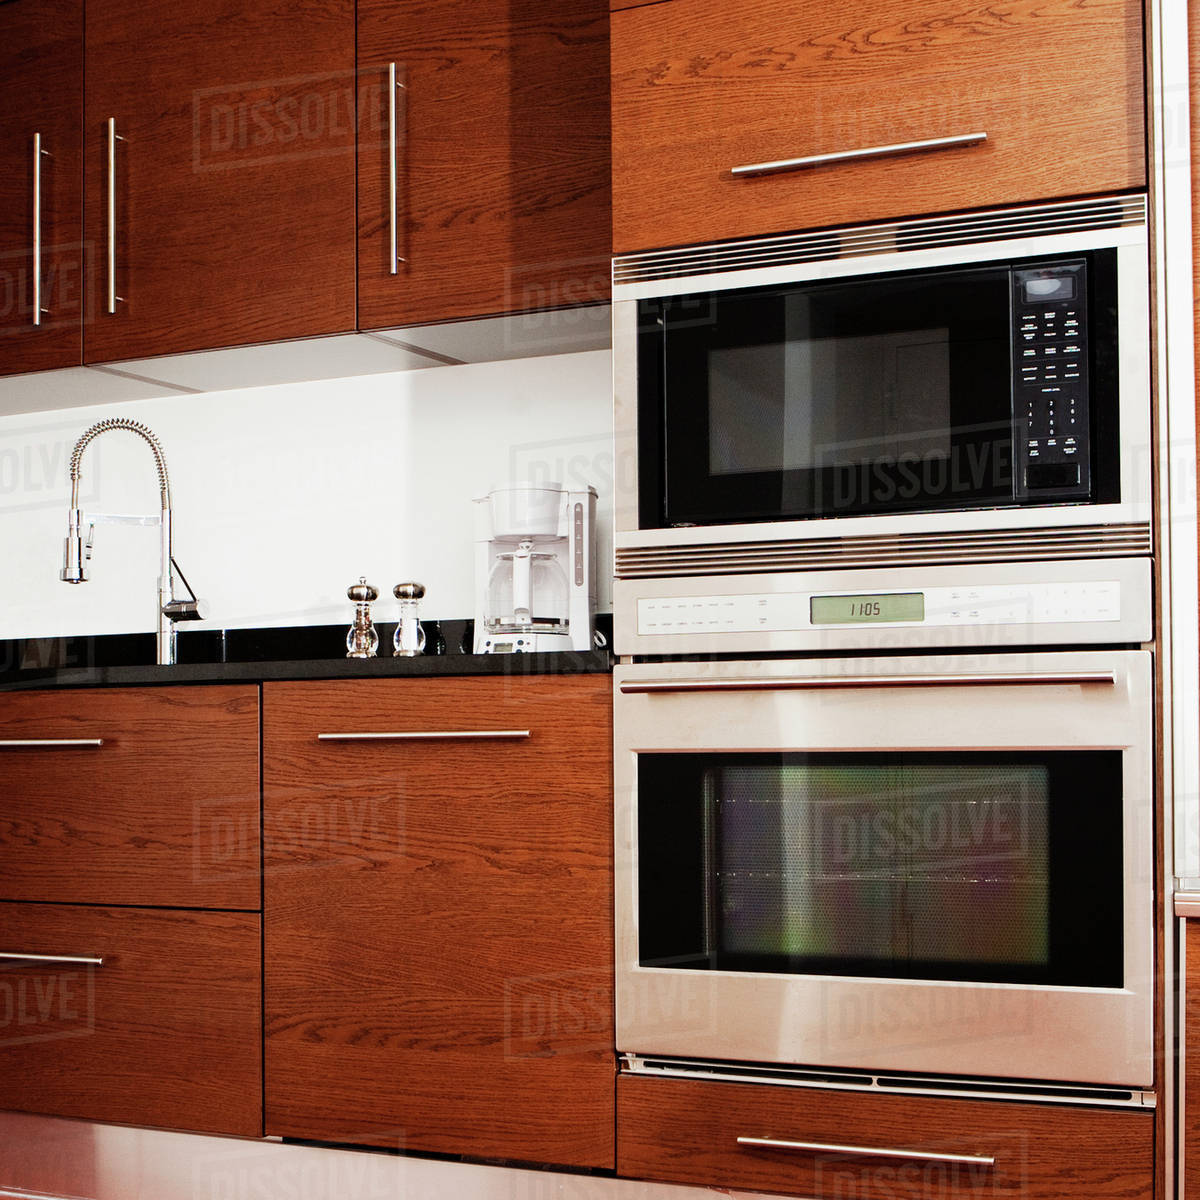 Oven Microwave Cabinets And Sink In Modern Kitchen D145 45 473